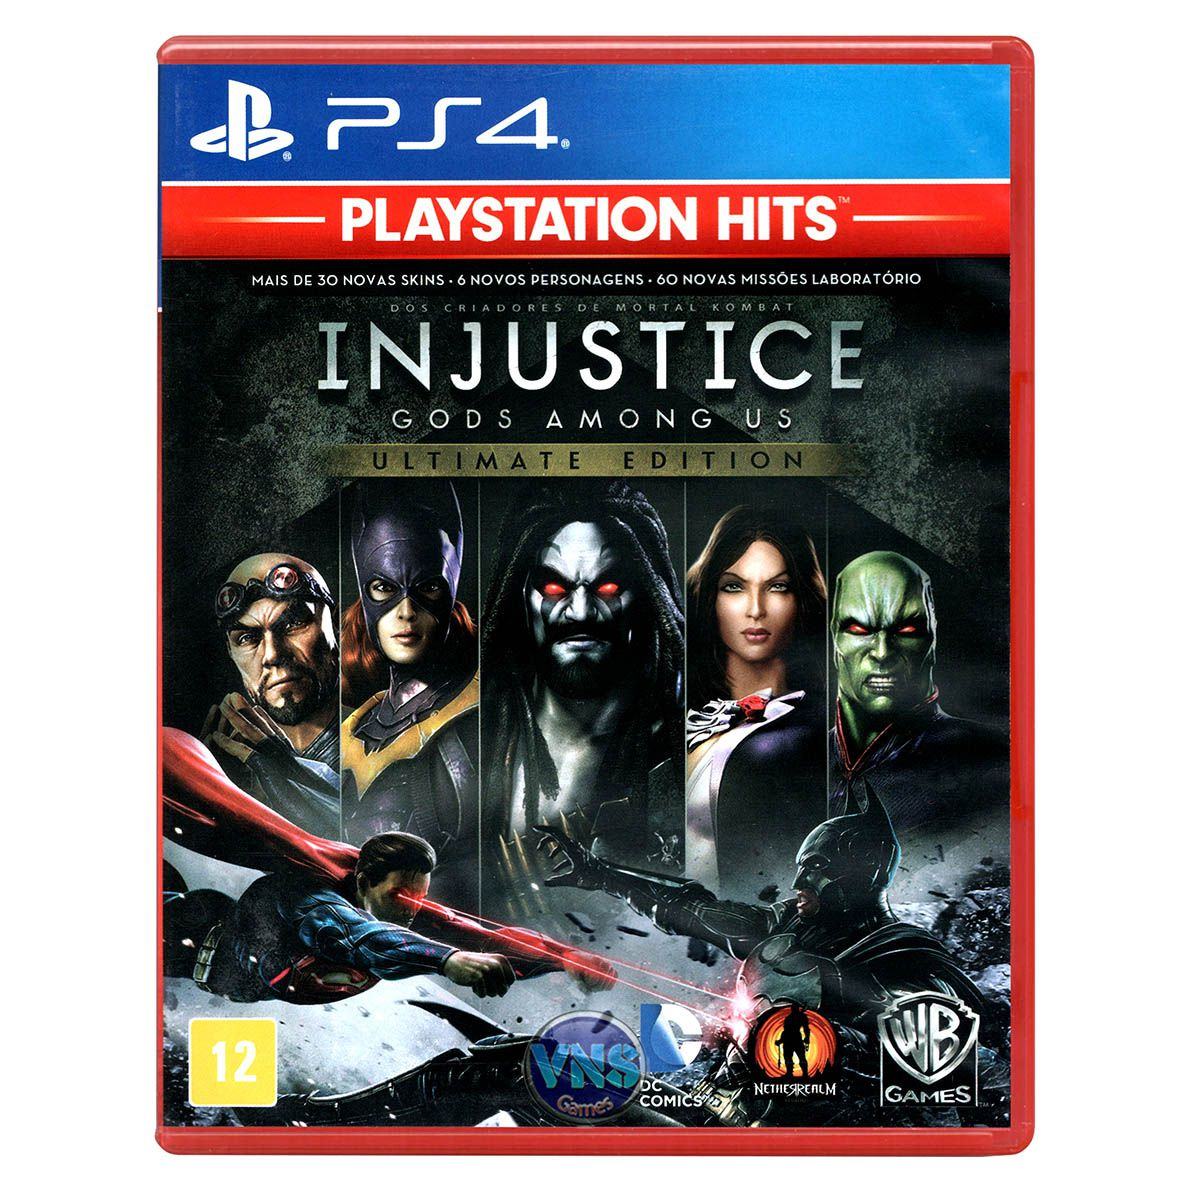 Injustice Gods Among Us - Ultimate Edition - PS4